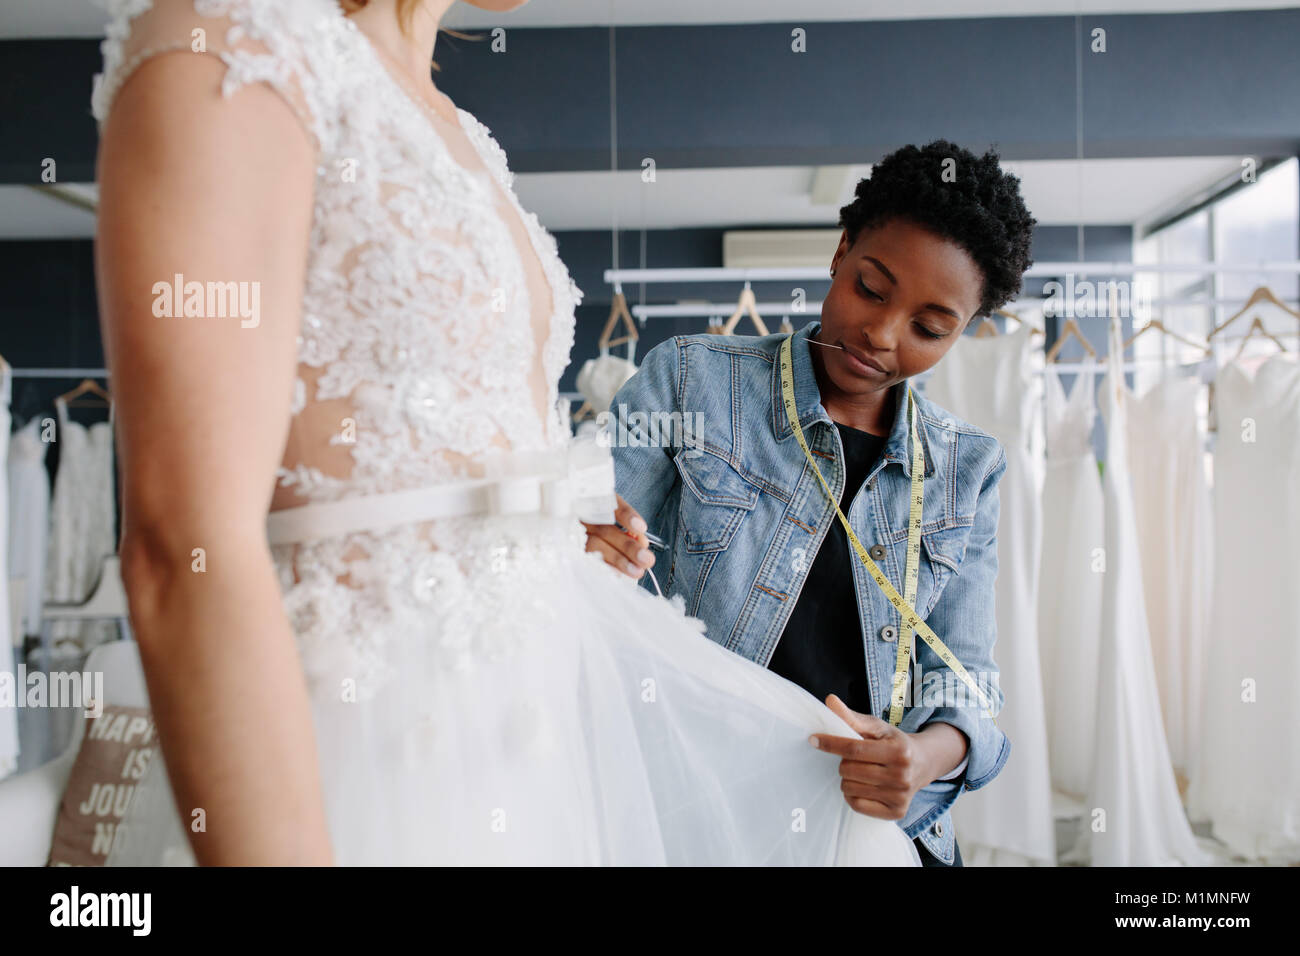 Professional wedding dress designer fitting bridal gown to woman in her store. Woman making adjustments to bridal - Stock Image